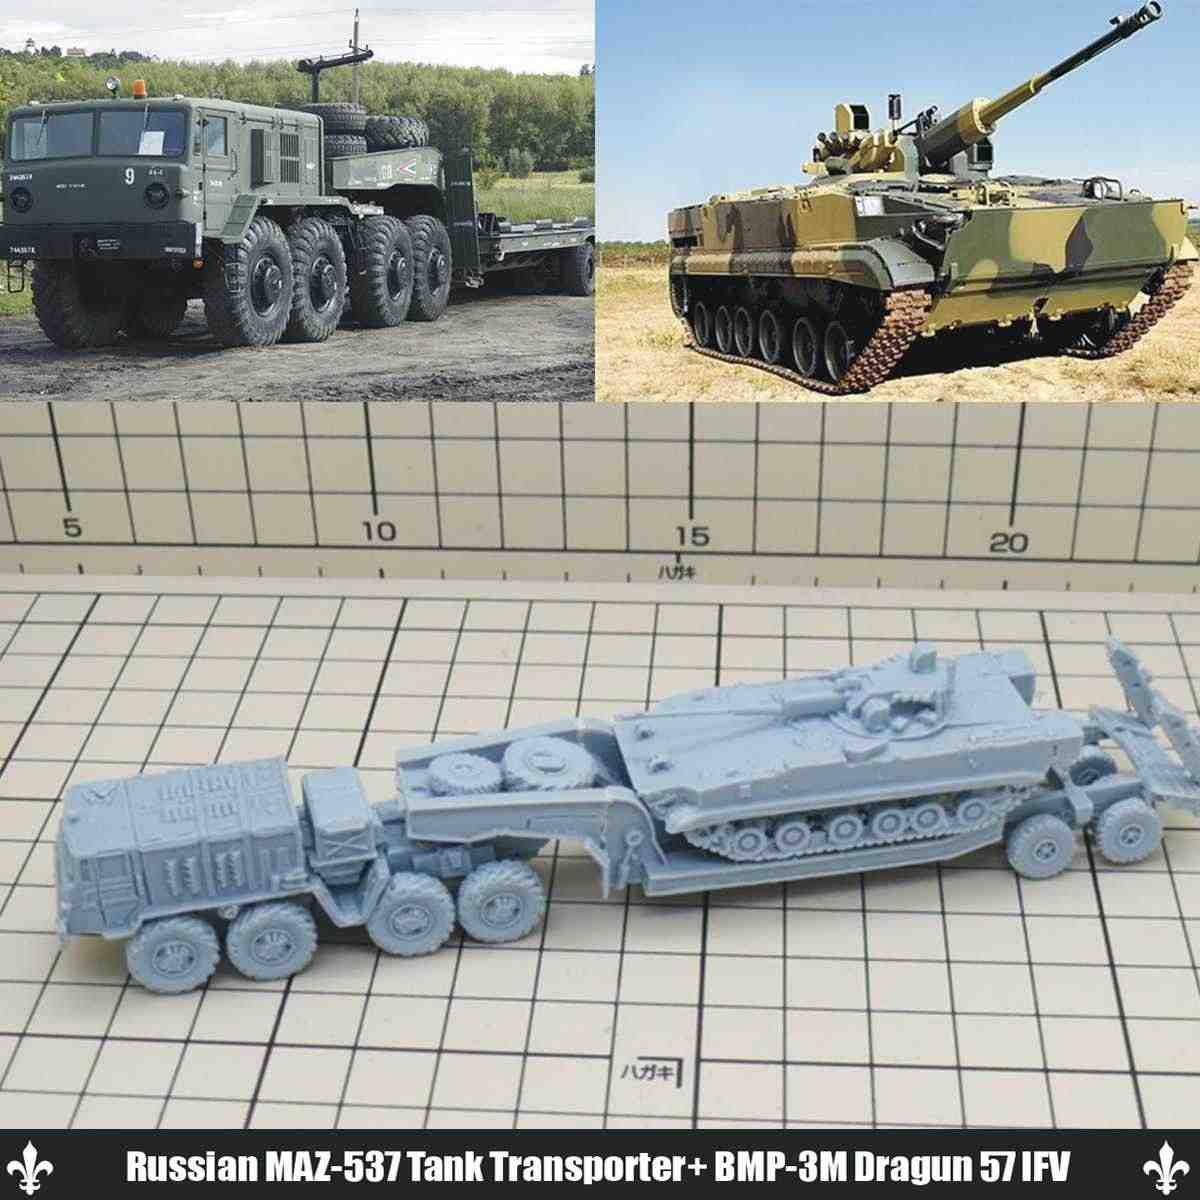 1/144 DIY Military Model Kits WWII Russian Vehicles Car Auto Tank Series  Sand Table Model Figurines 3D Toys Collection Kids Gift